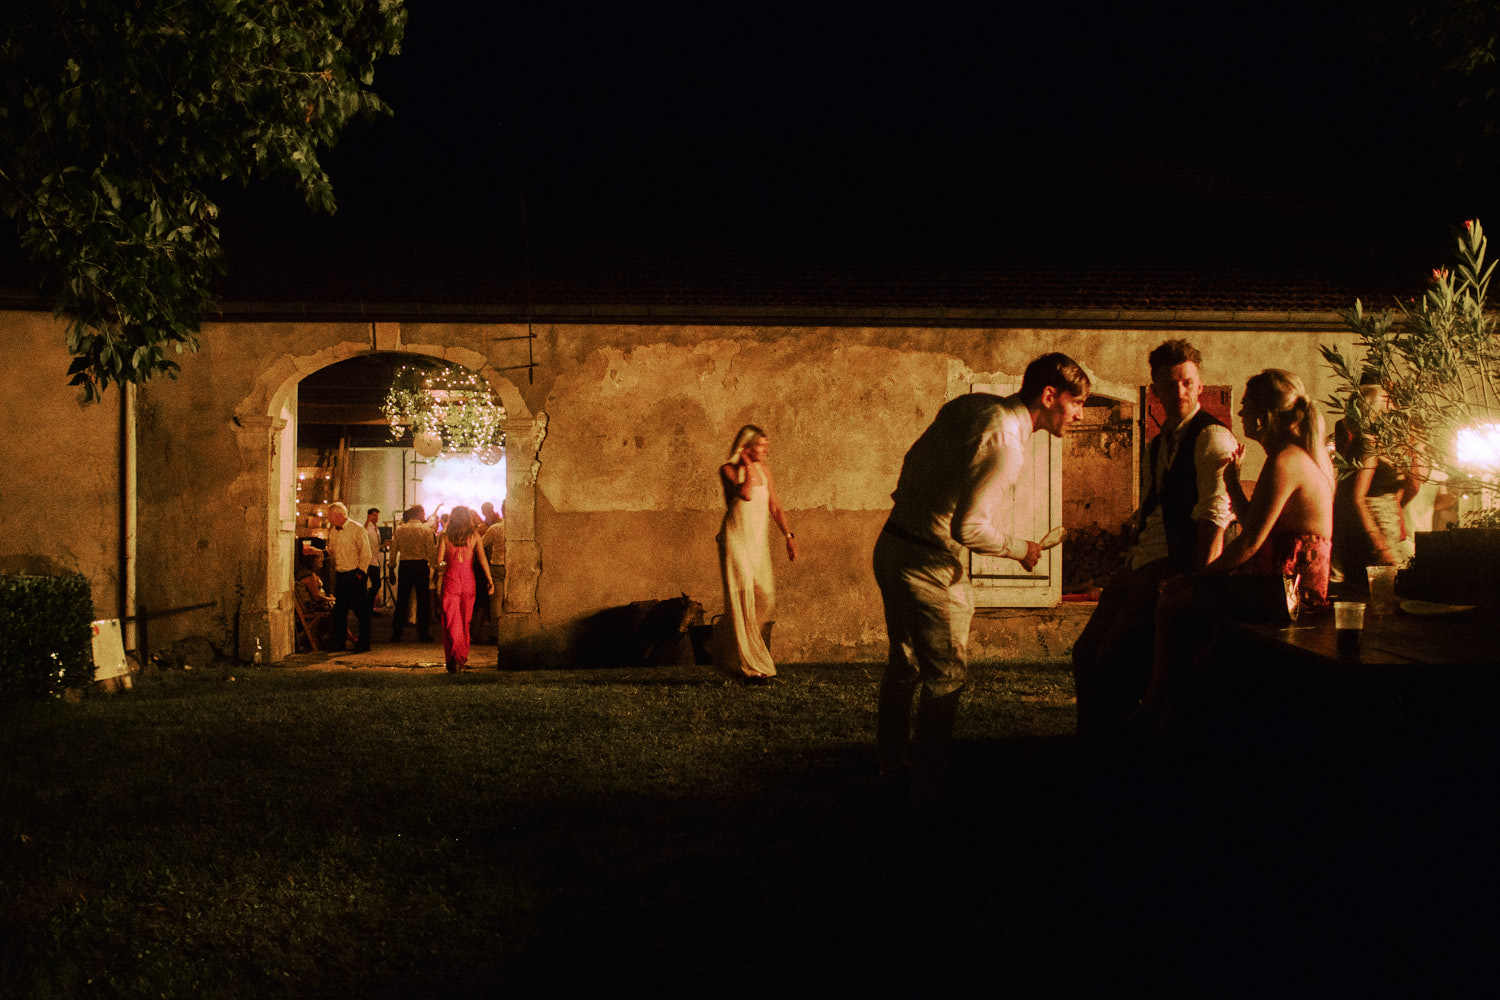 Wedding guests mingle inside and outside a barn at a French wedding